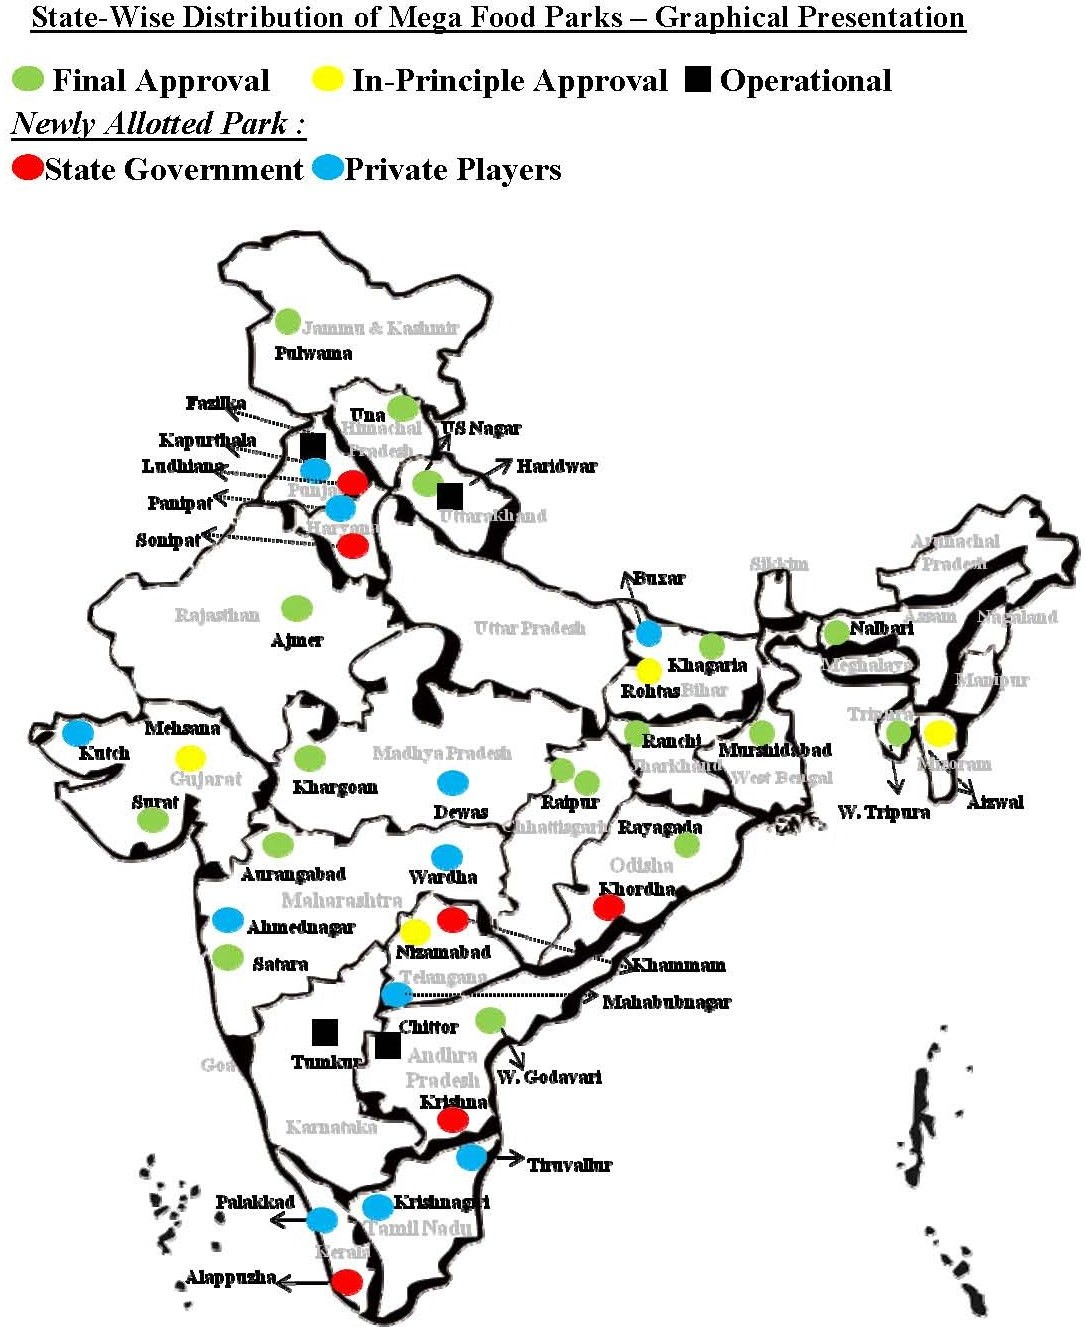 Food Processing Industry Mega Food Parks In India Pmf Ias